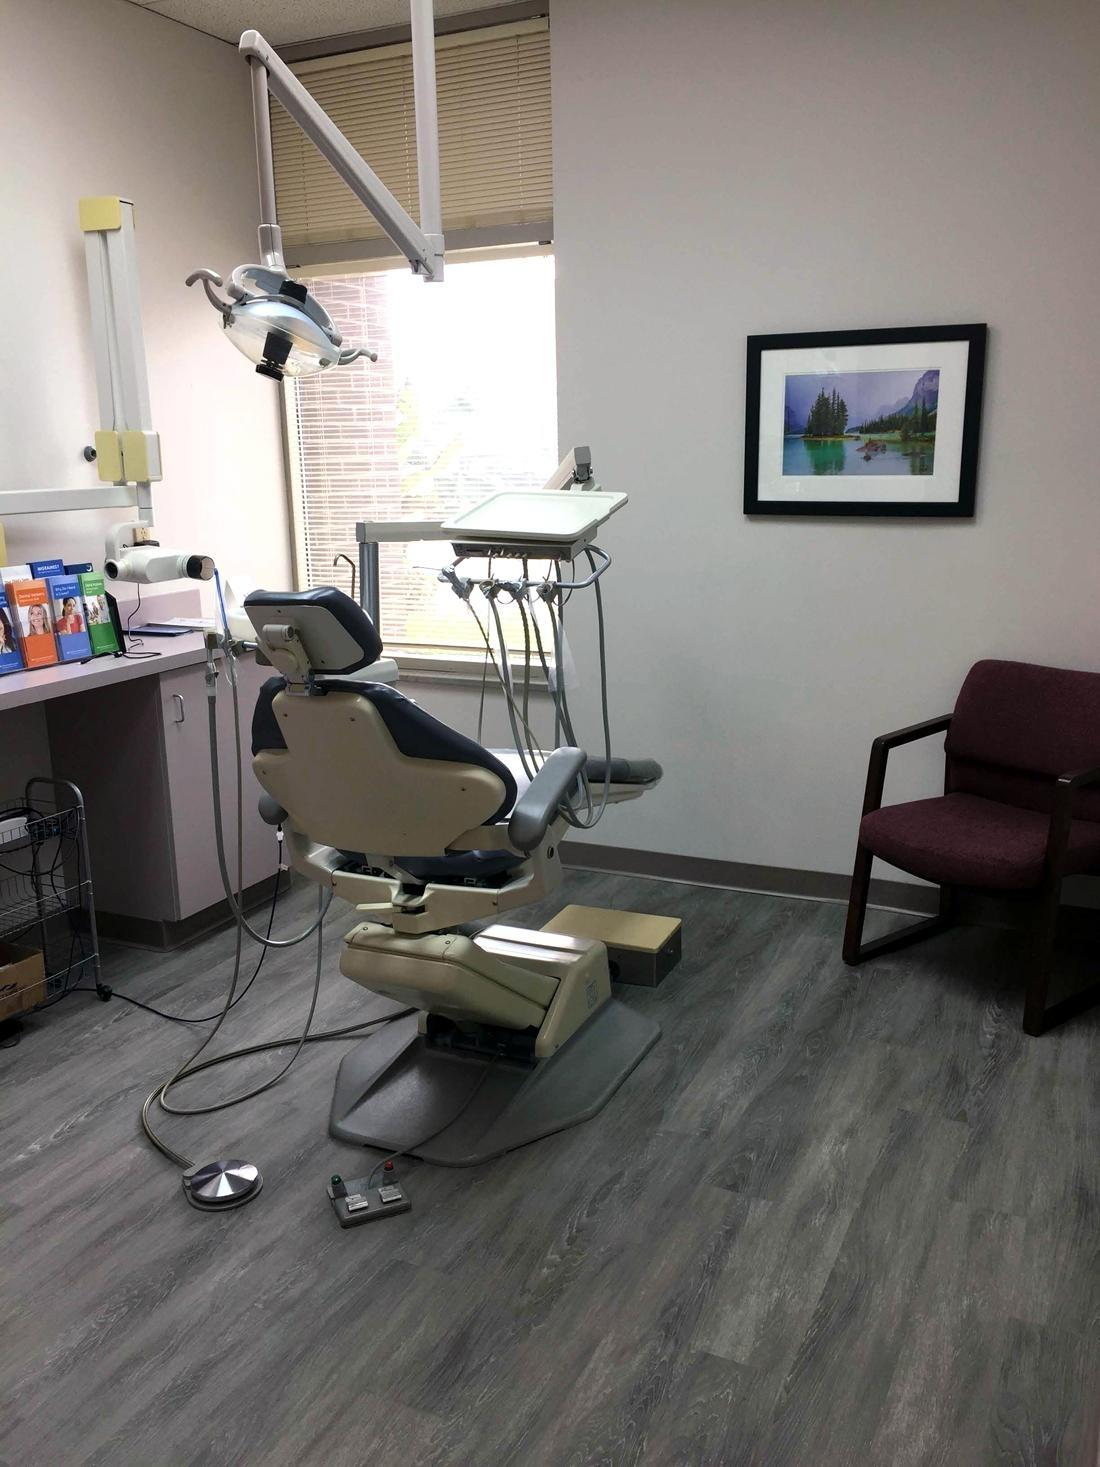 Dental treatment room at Webster Groves Dental in Webster Groves, MO